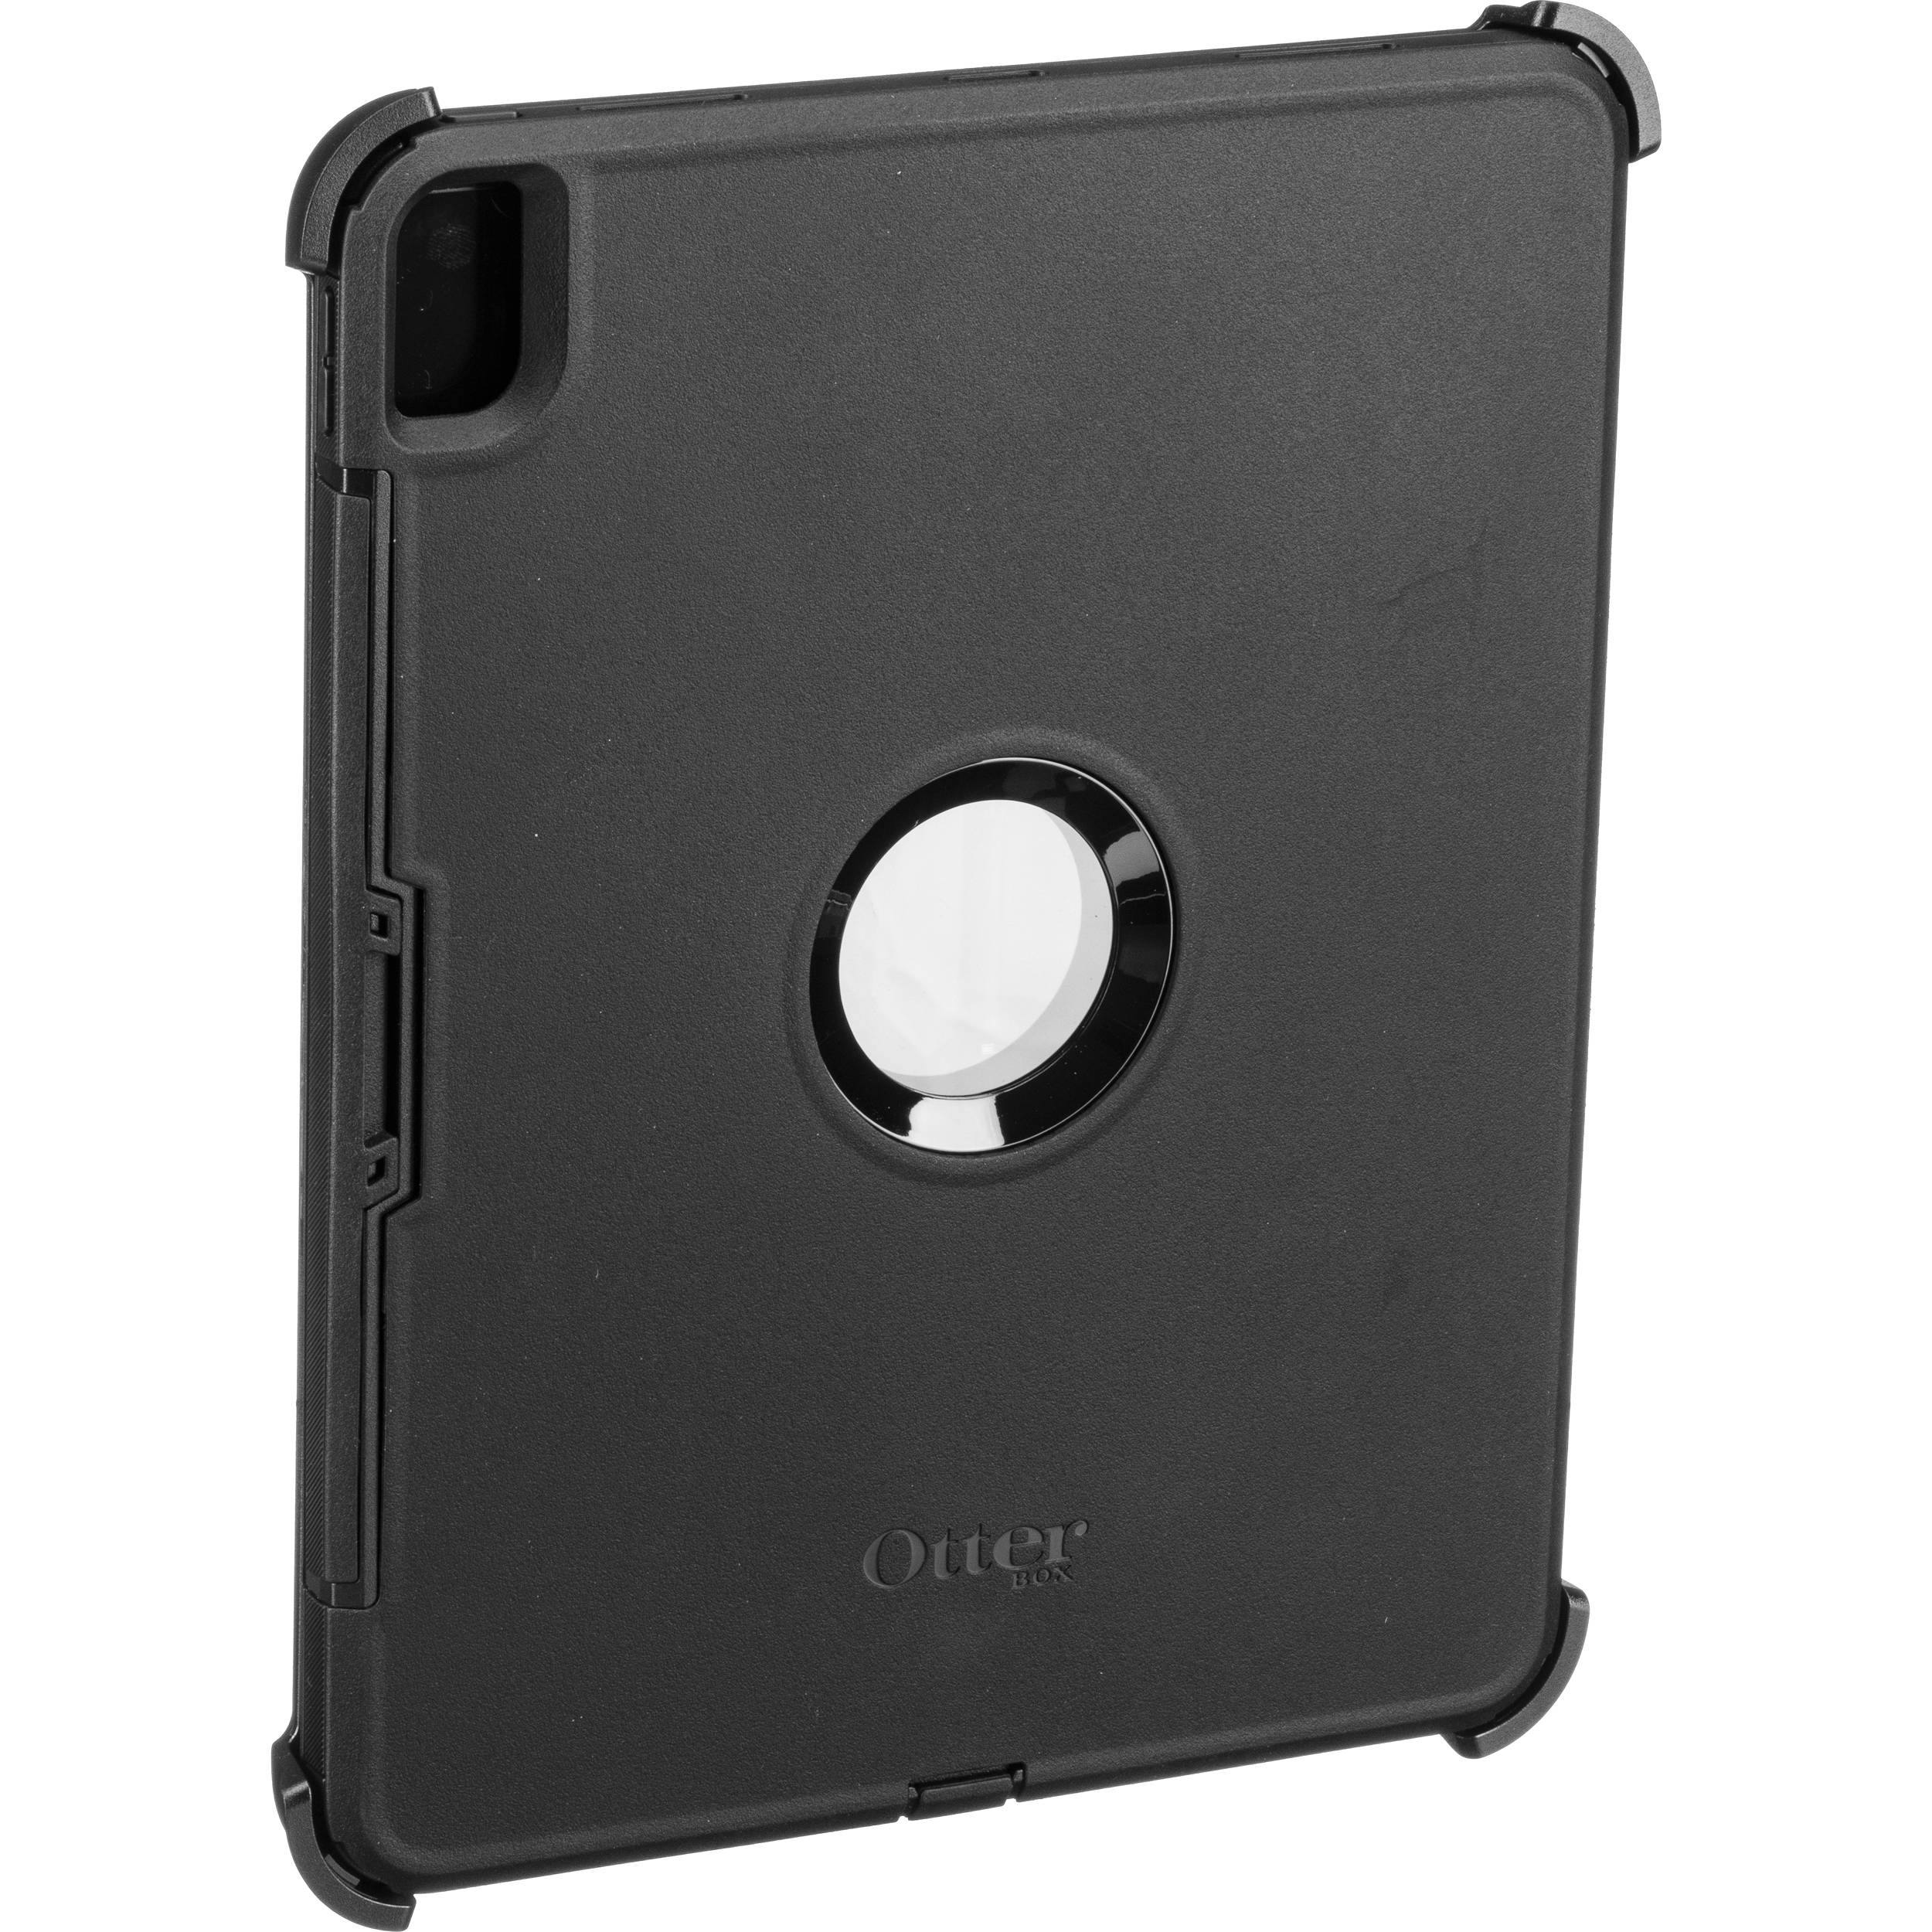 official photos 00f5e 703b5 OtterBox Defender Case for 12.9